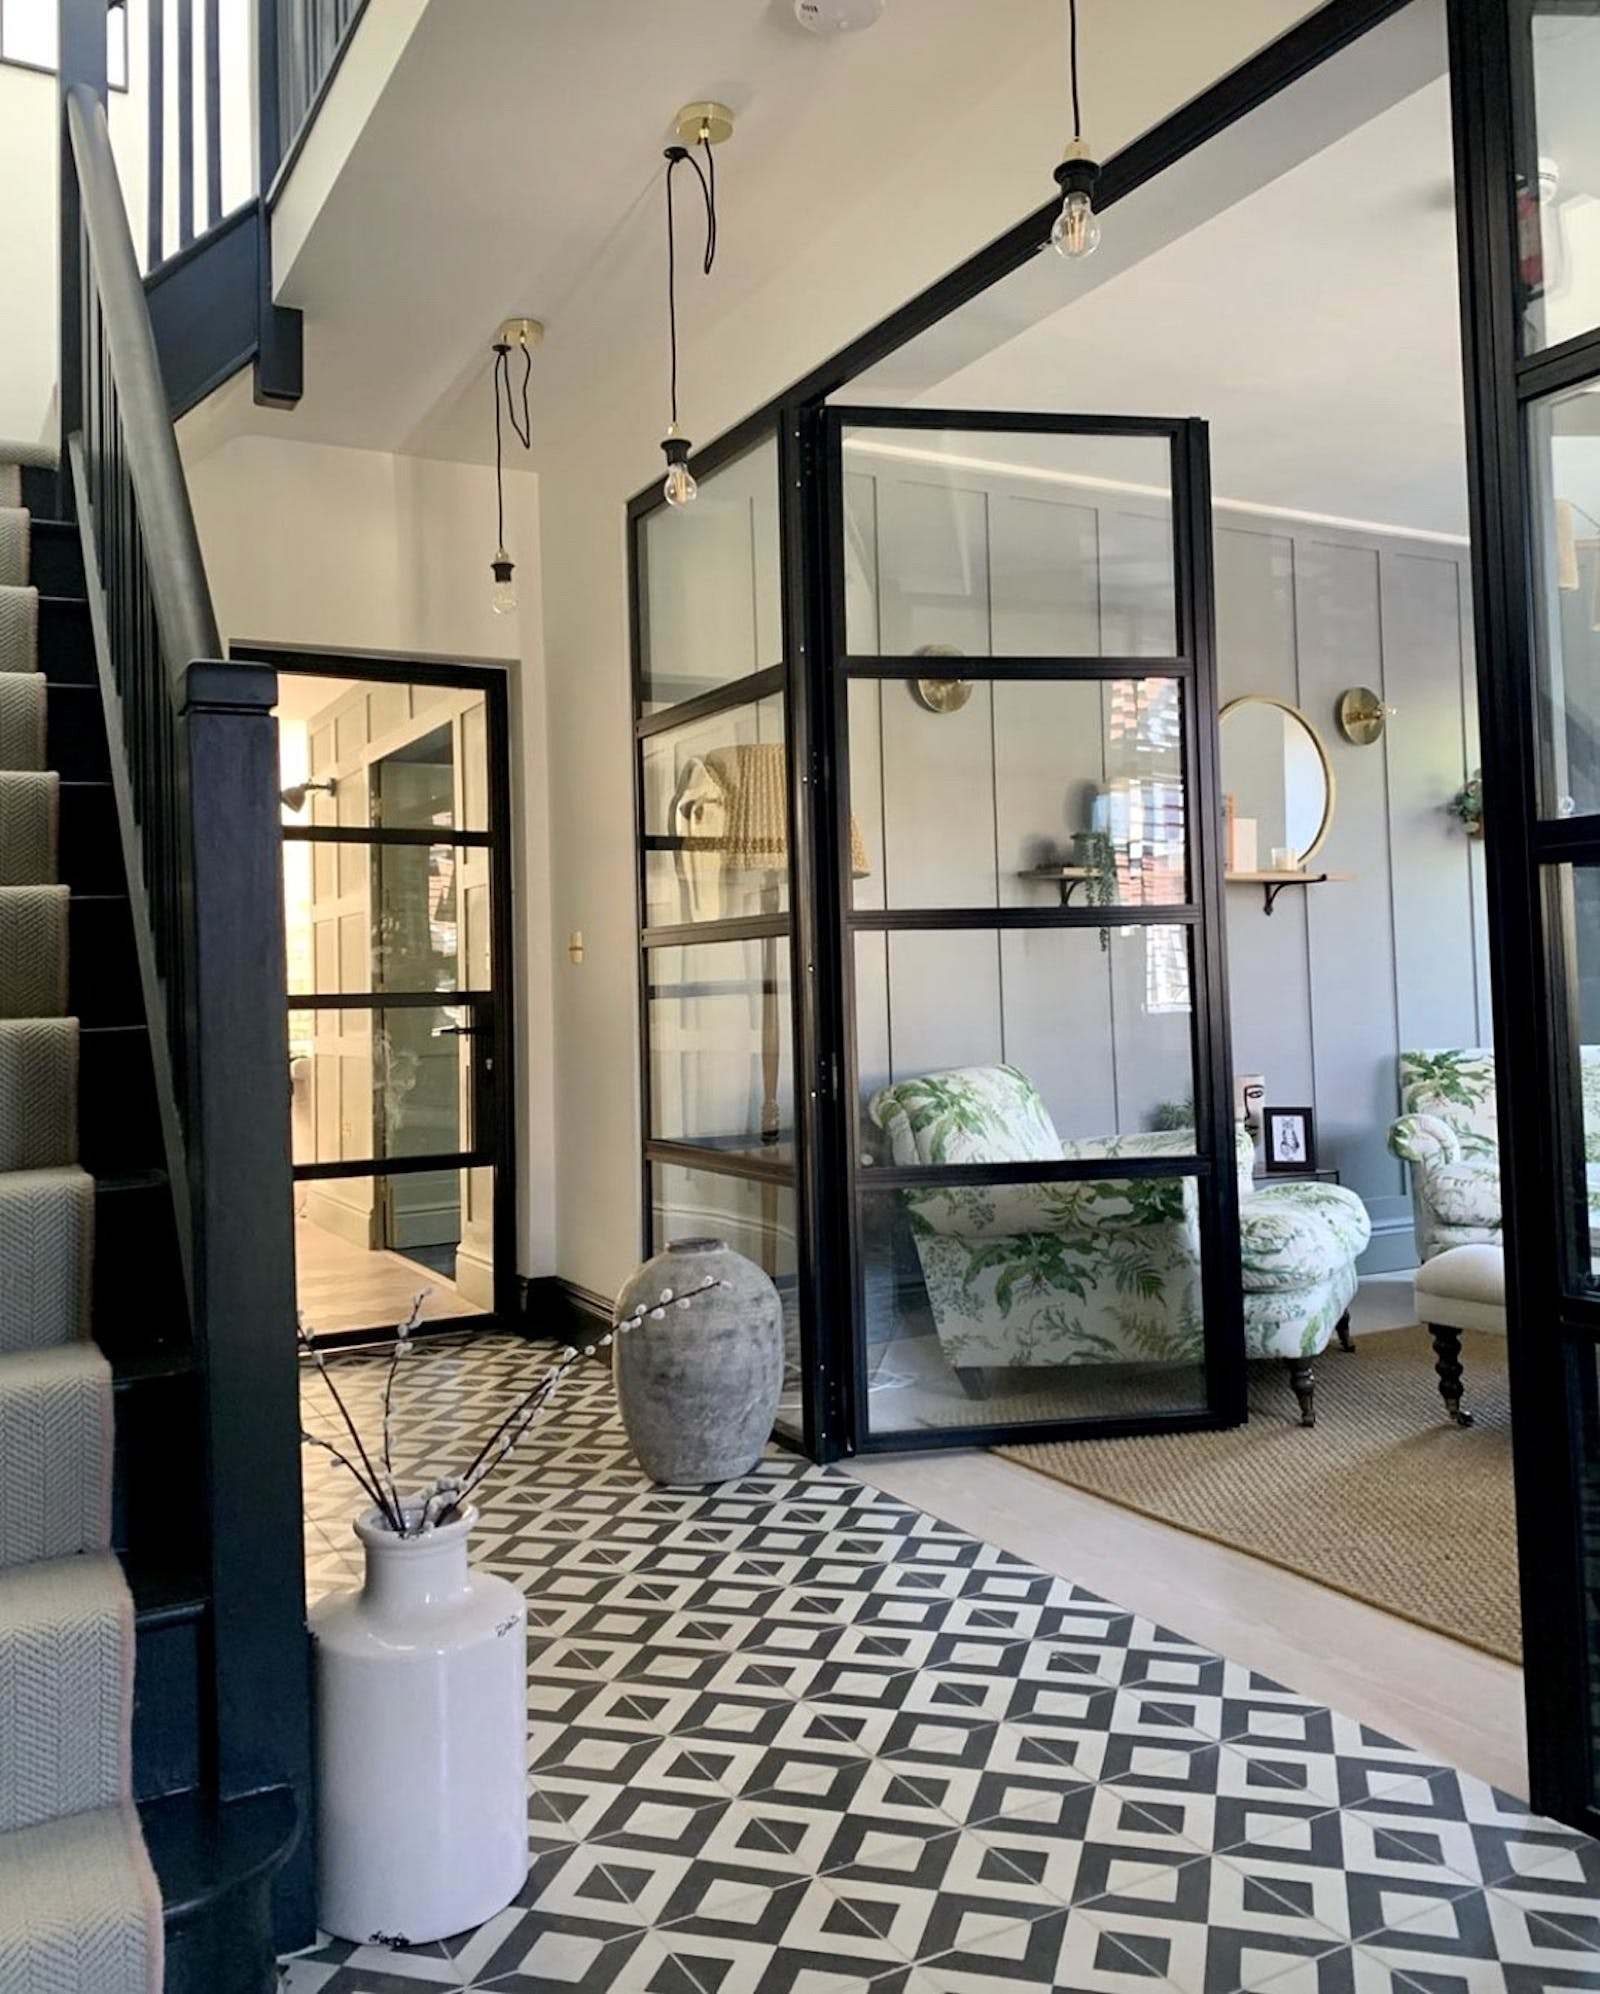 Hallway with tiles and glass doors